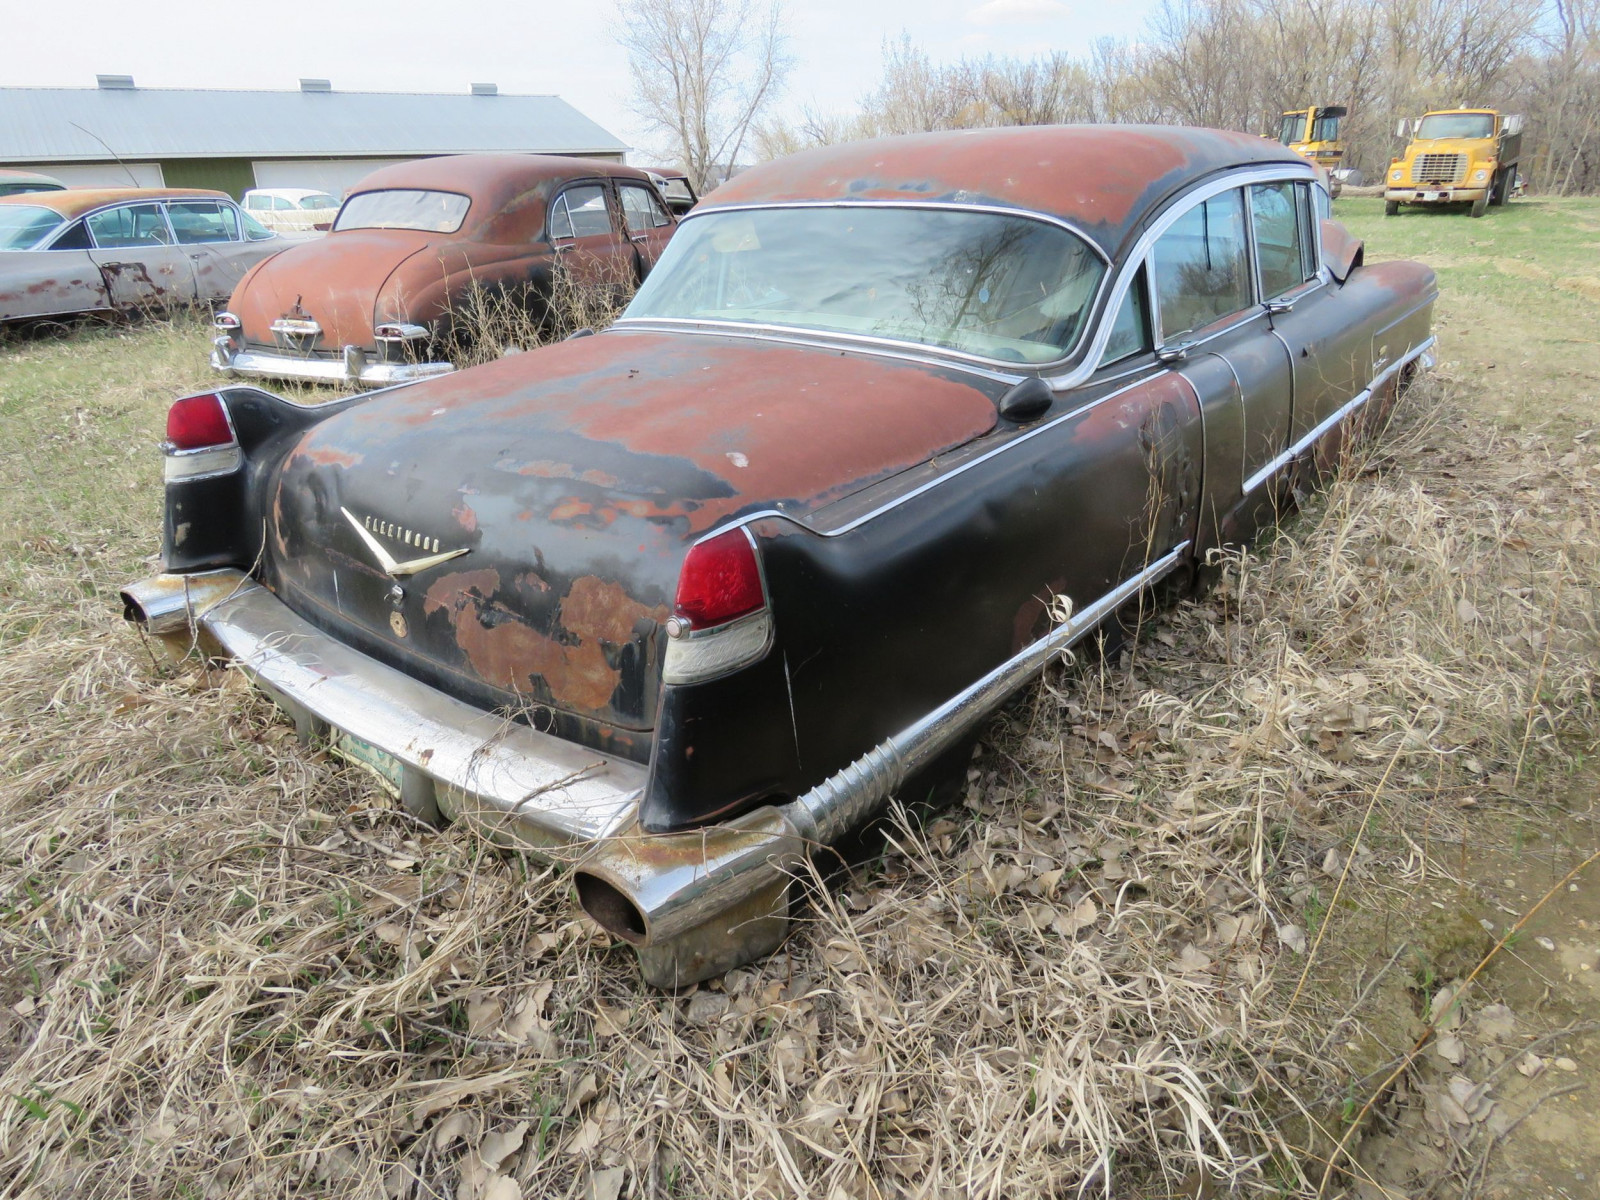 1956 Cadillac Fleetwood 4dr Sedan 5660119185 Sixty Special - Image 4